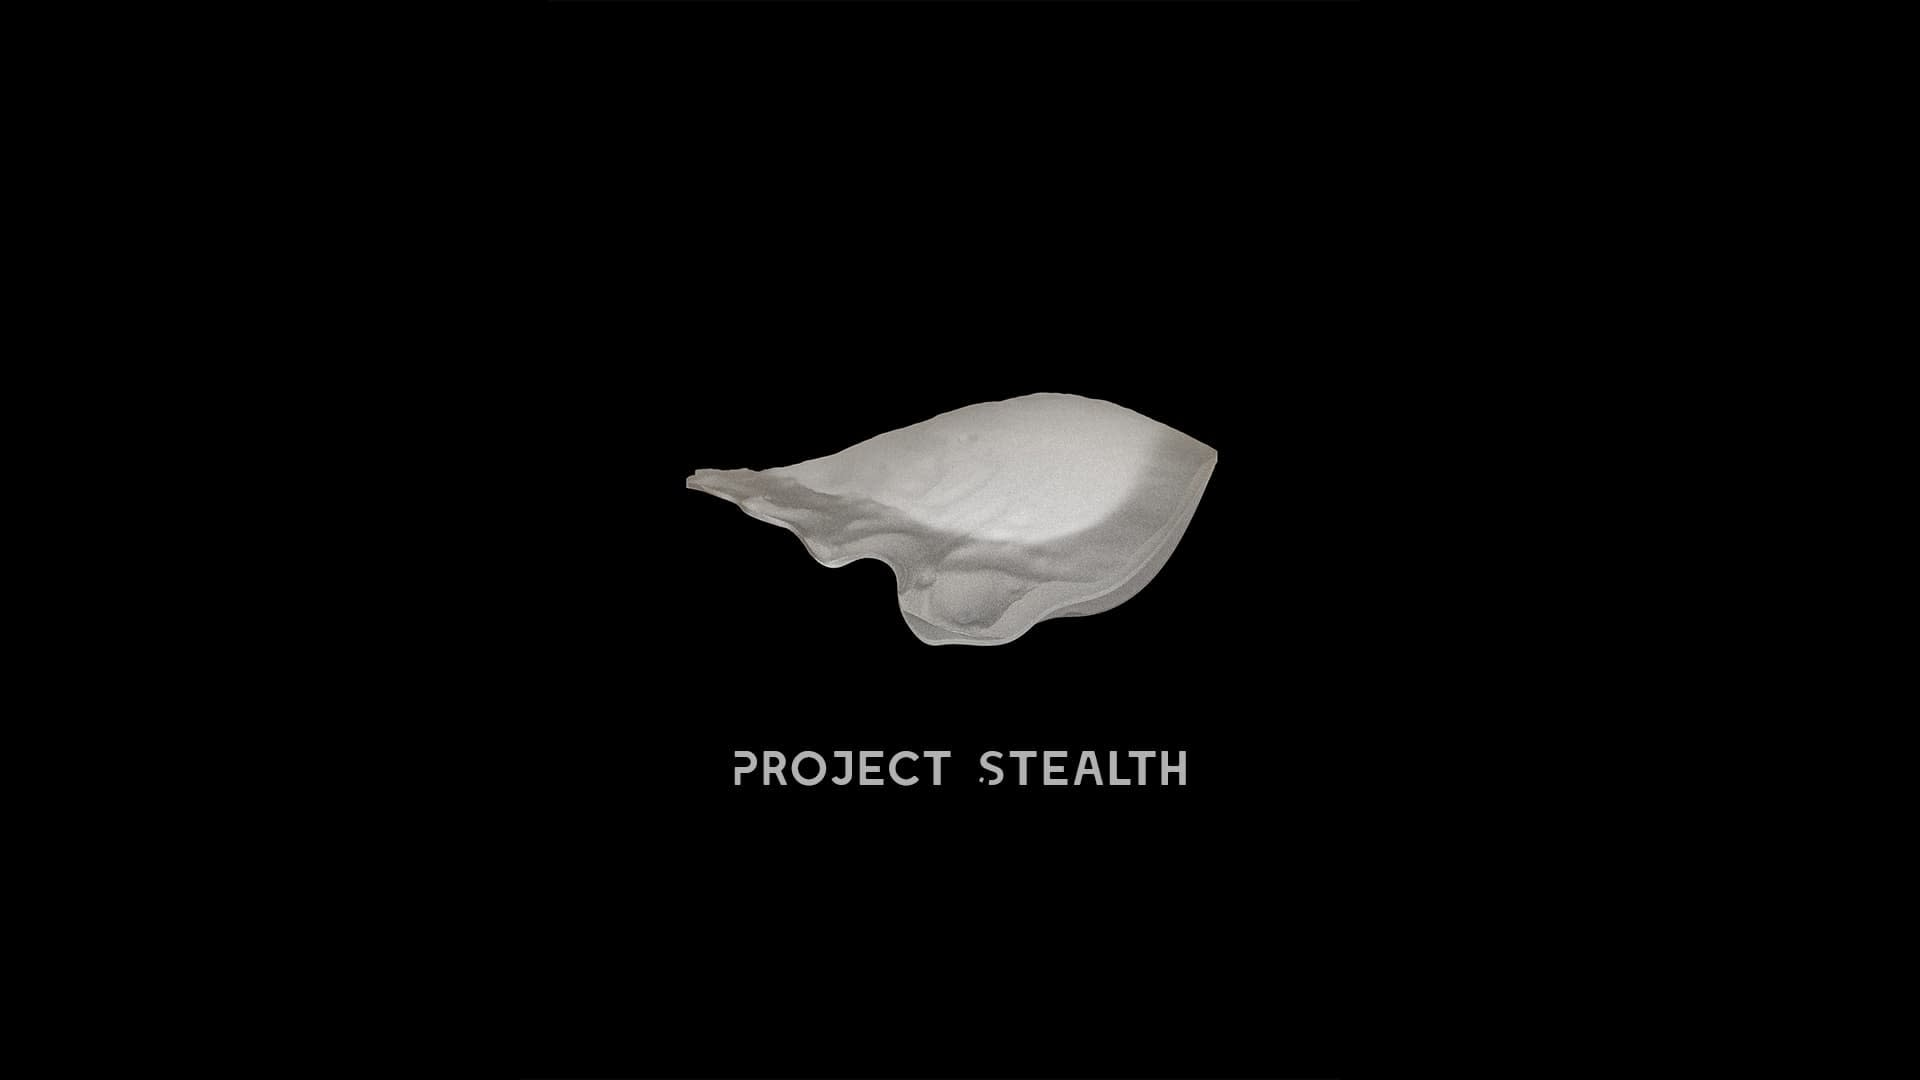 — Project Stealth